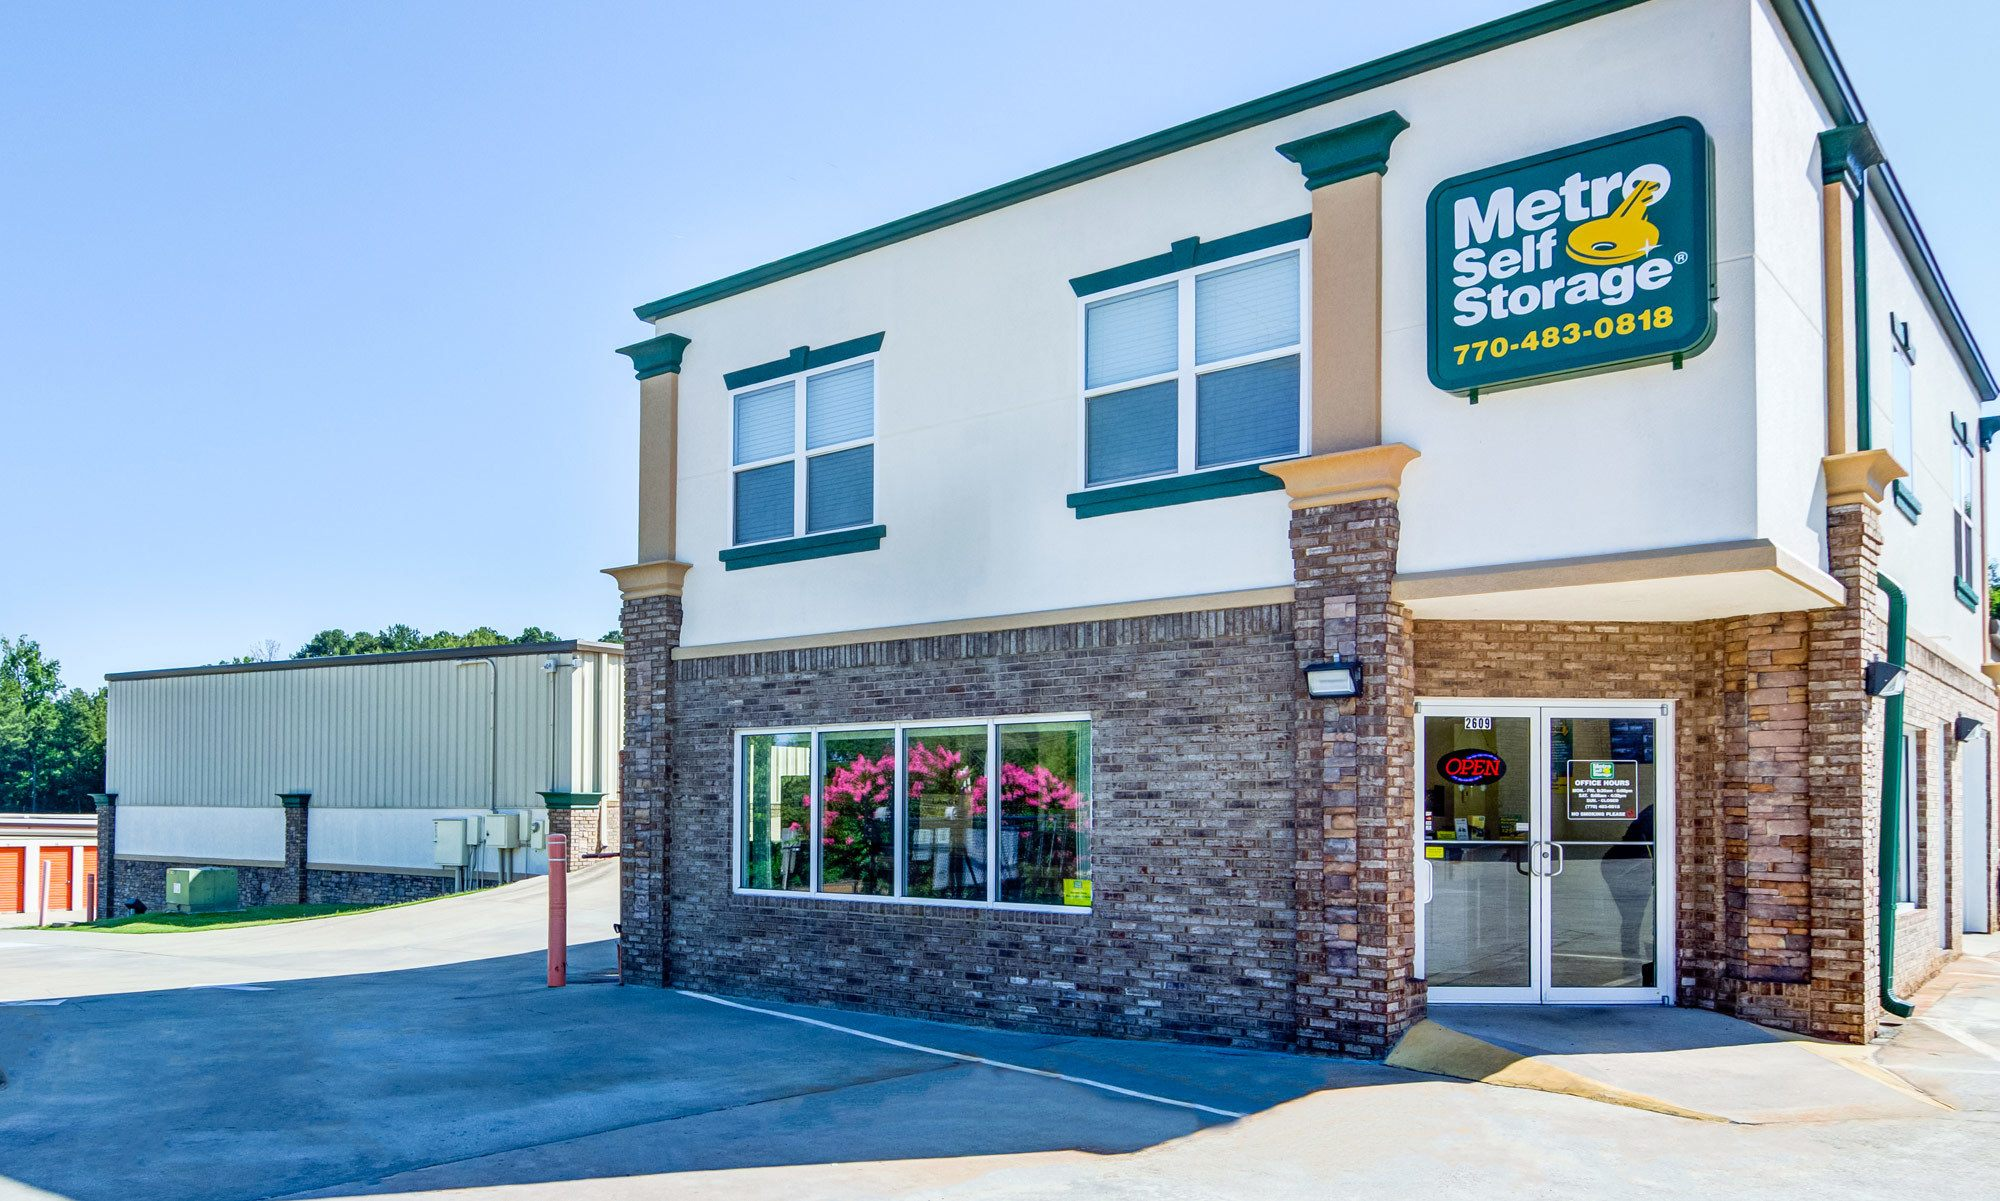 Metro Self Storage in Conyers, GA